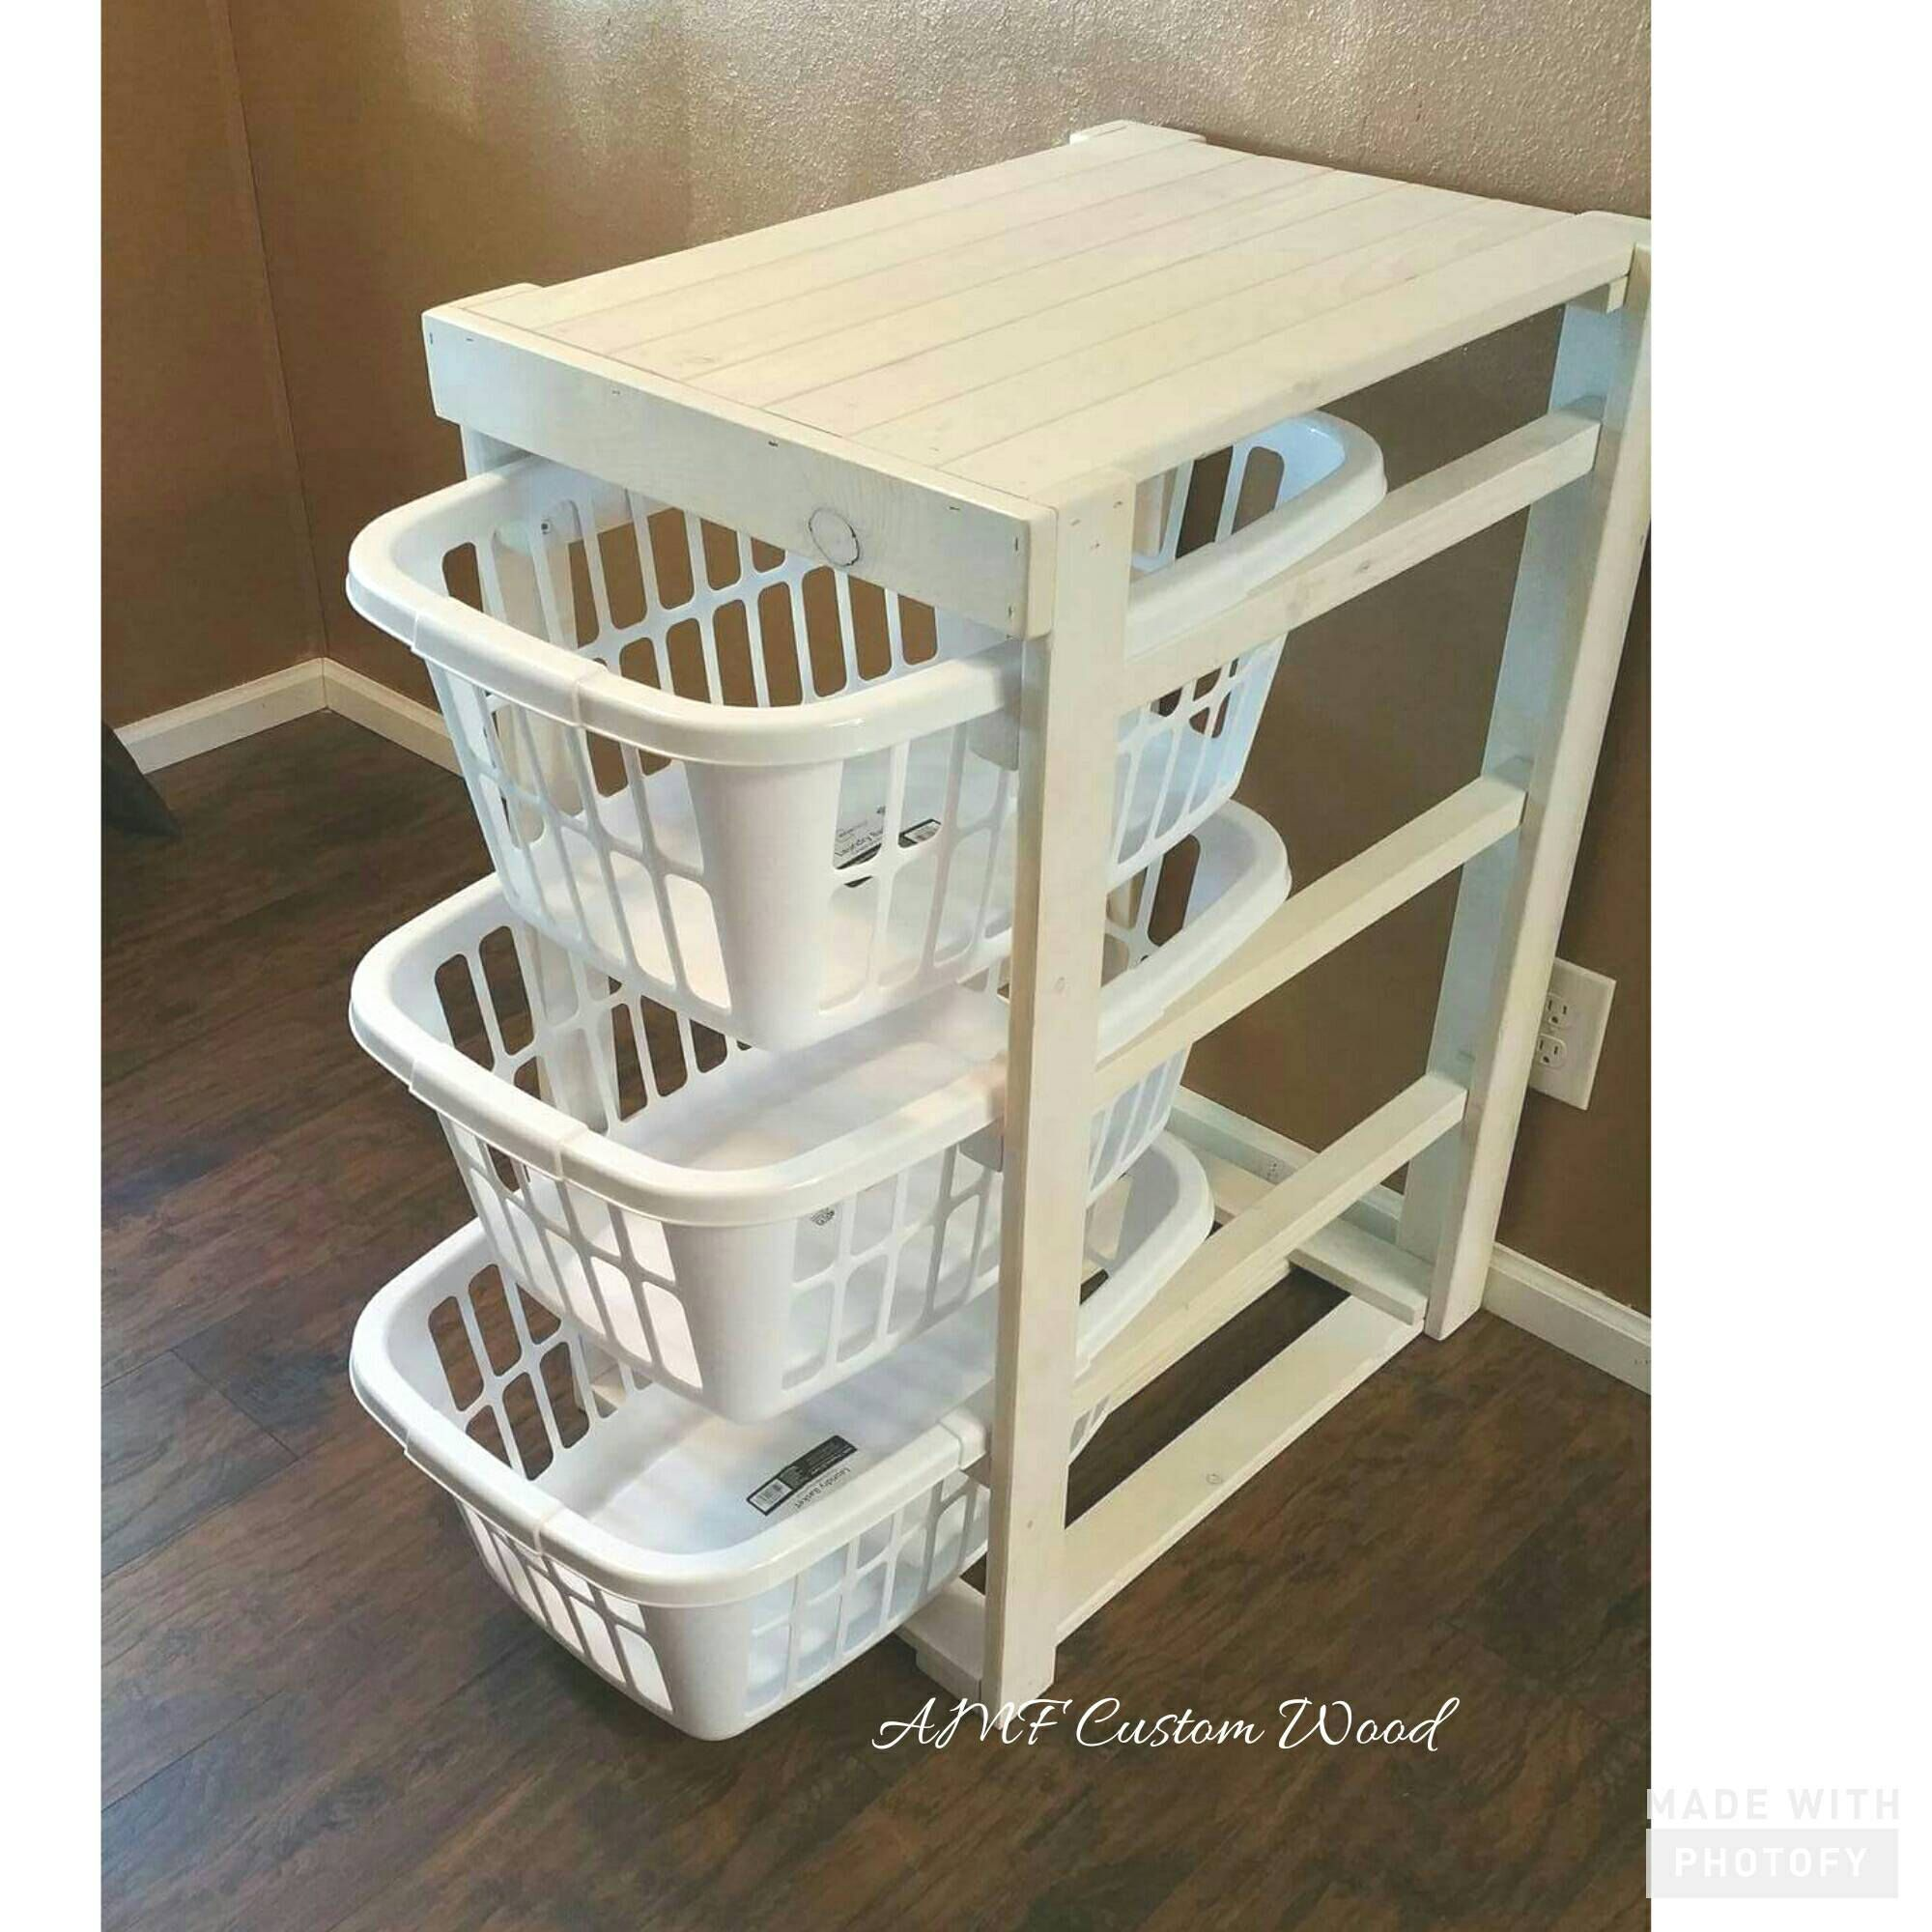 Laundry Baskets Organizer Size Is 36x24x14 Laundry